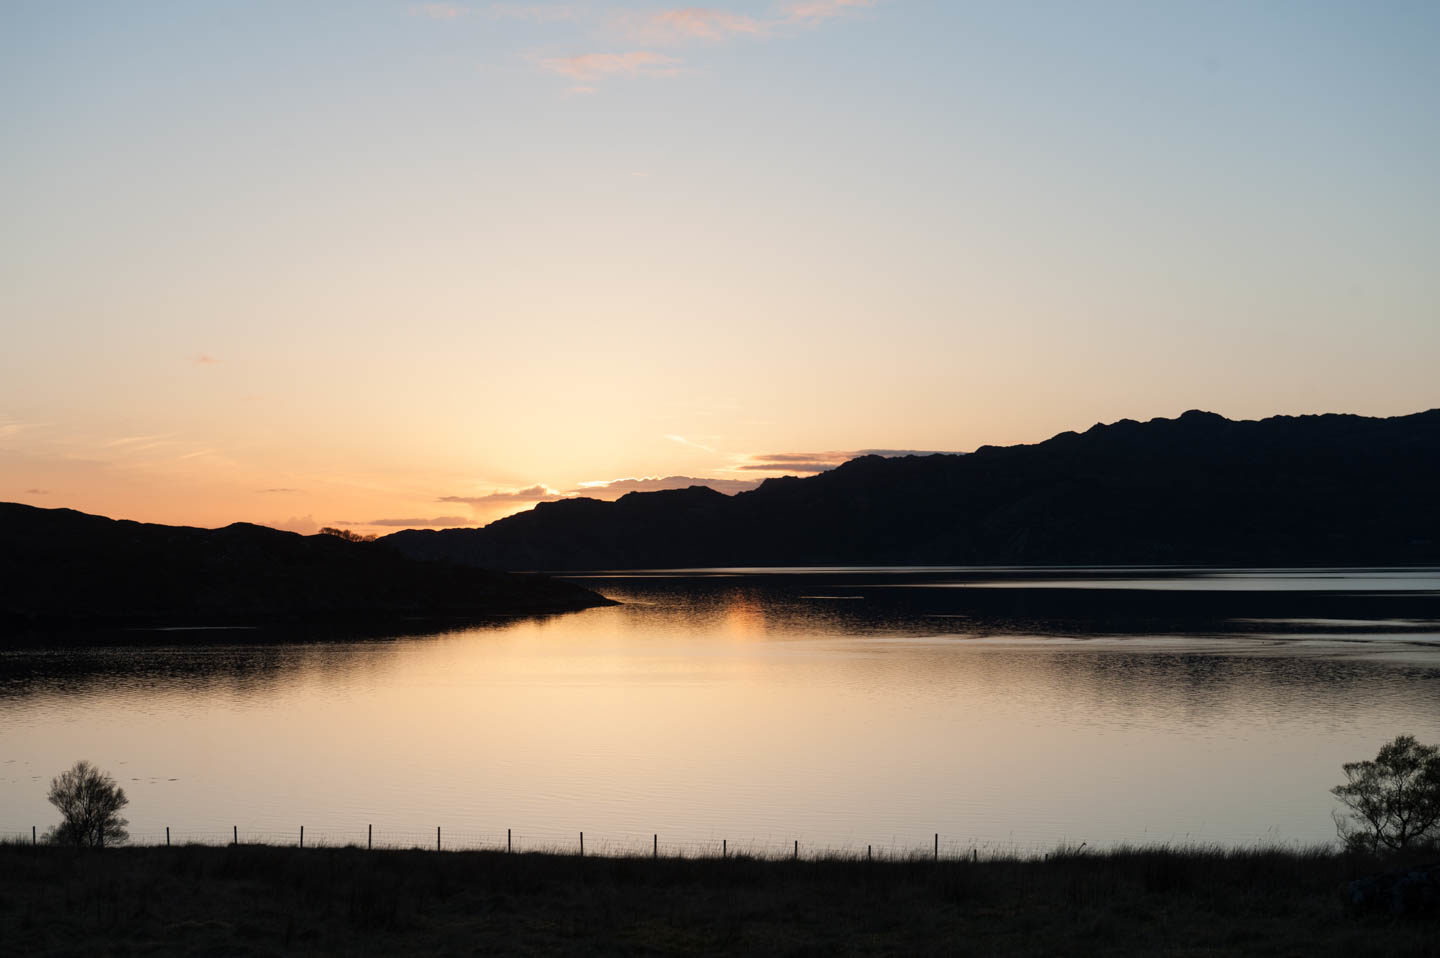 Sunset over Loch Torridon